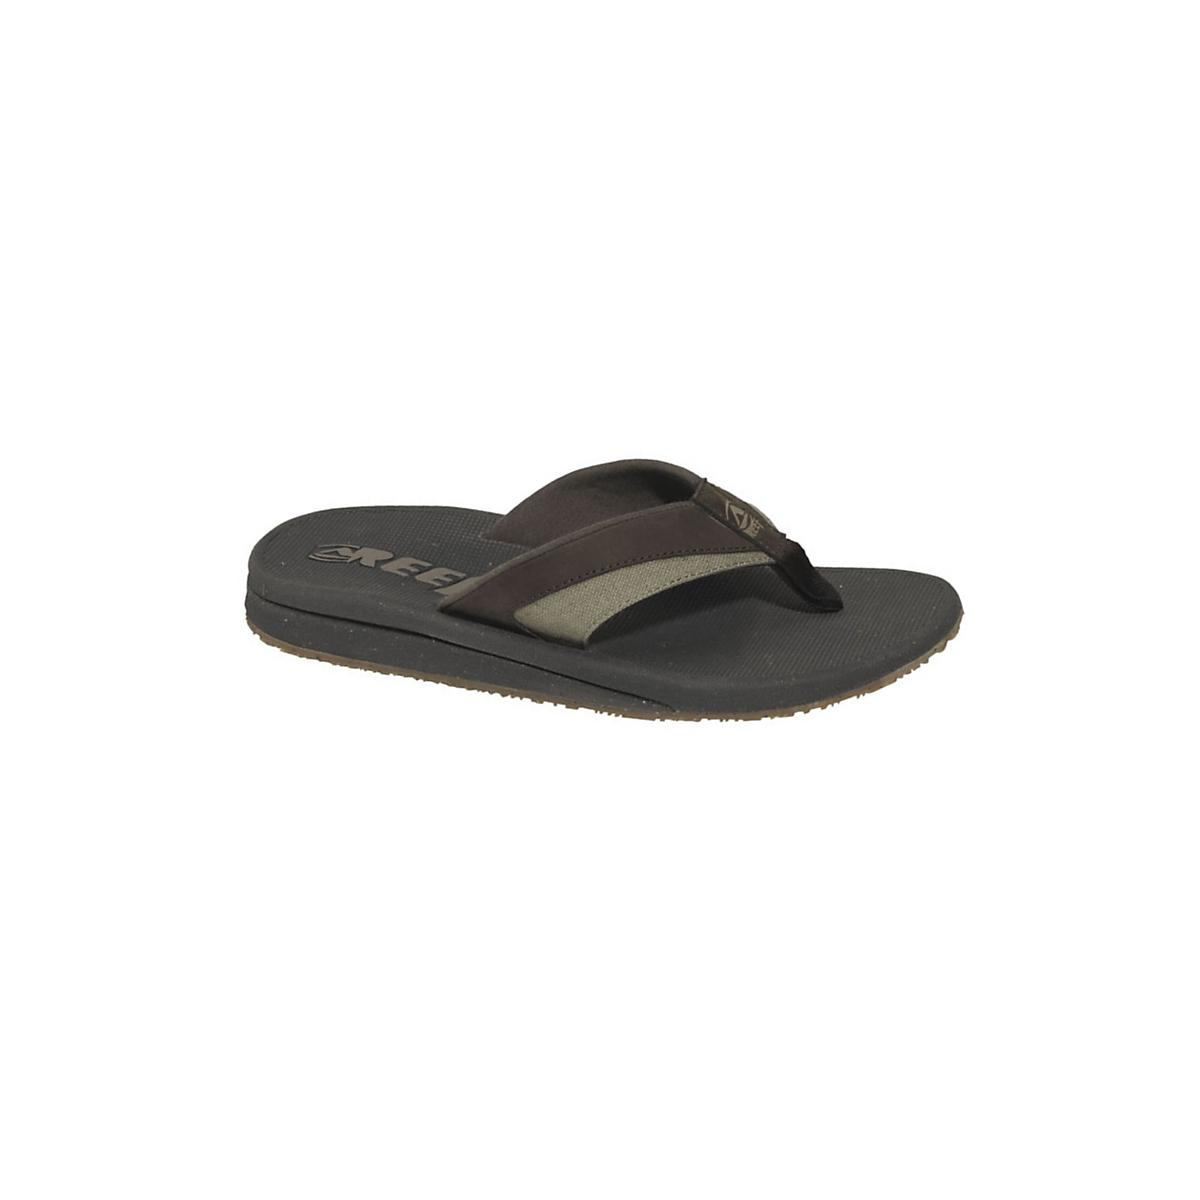 Creative Reef Sandals Stash  Mens Sandals